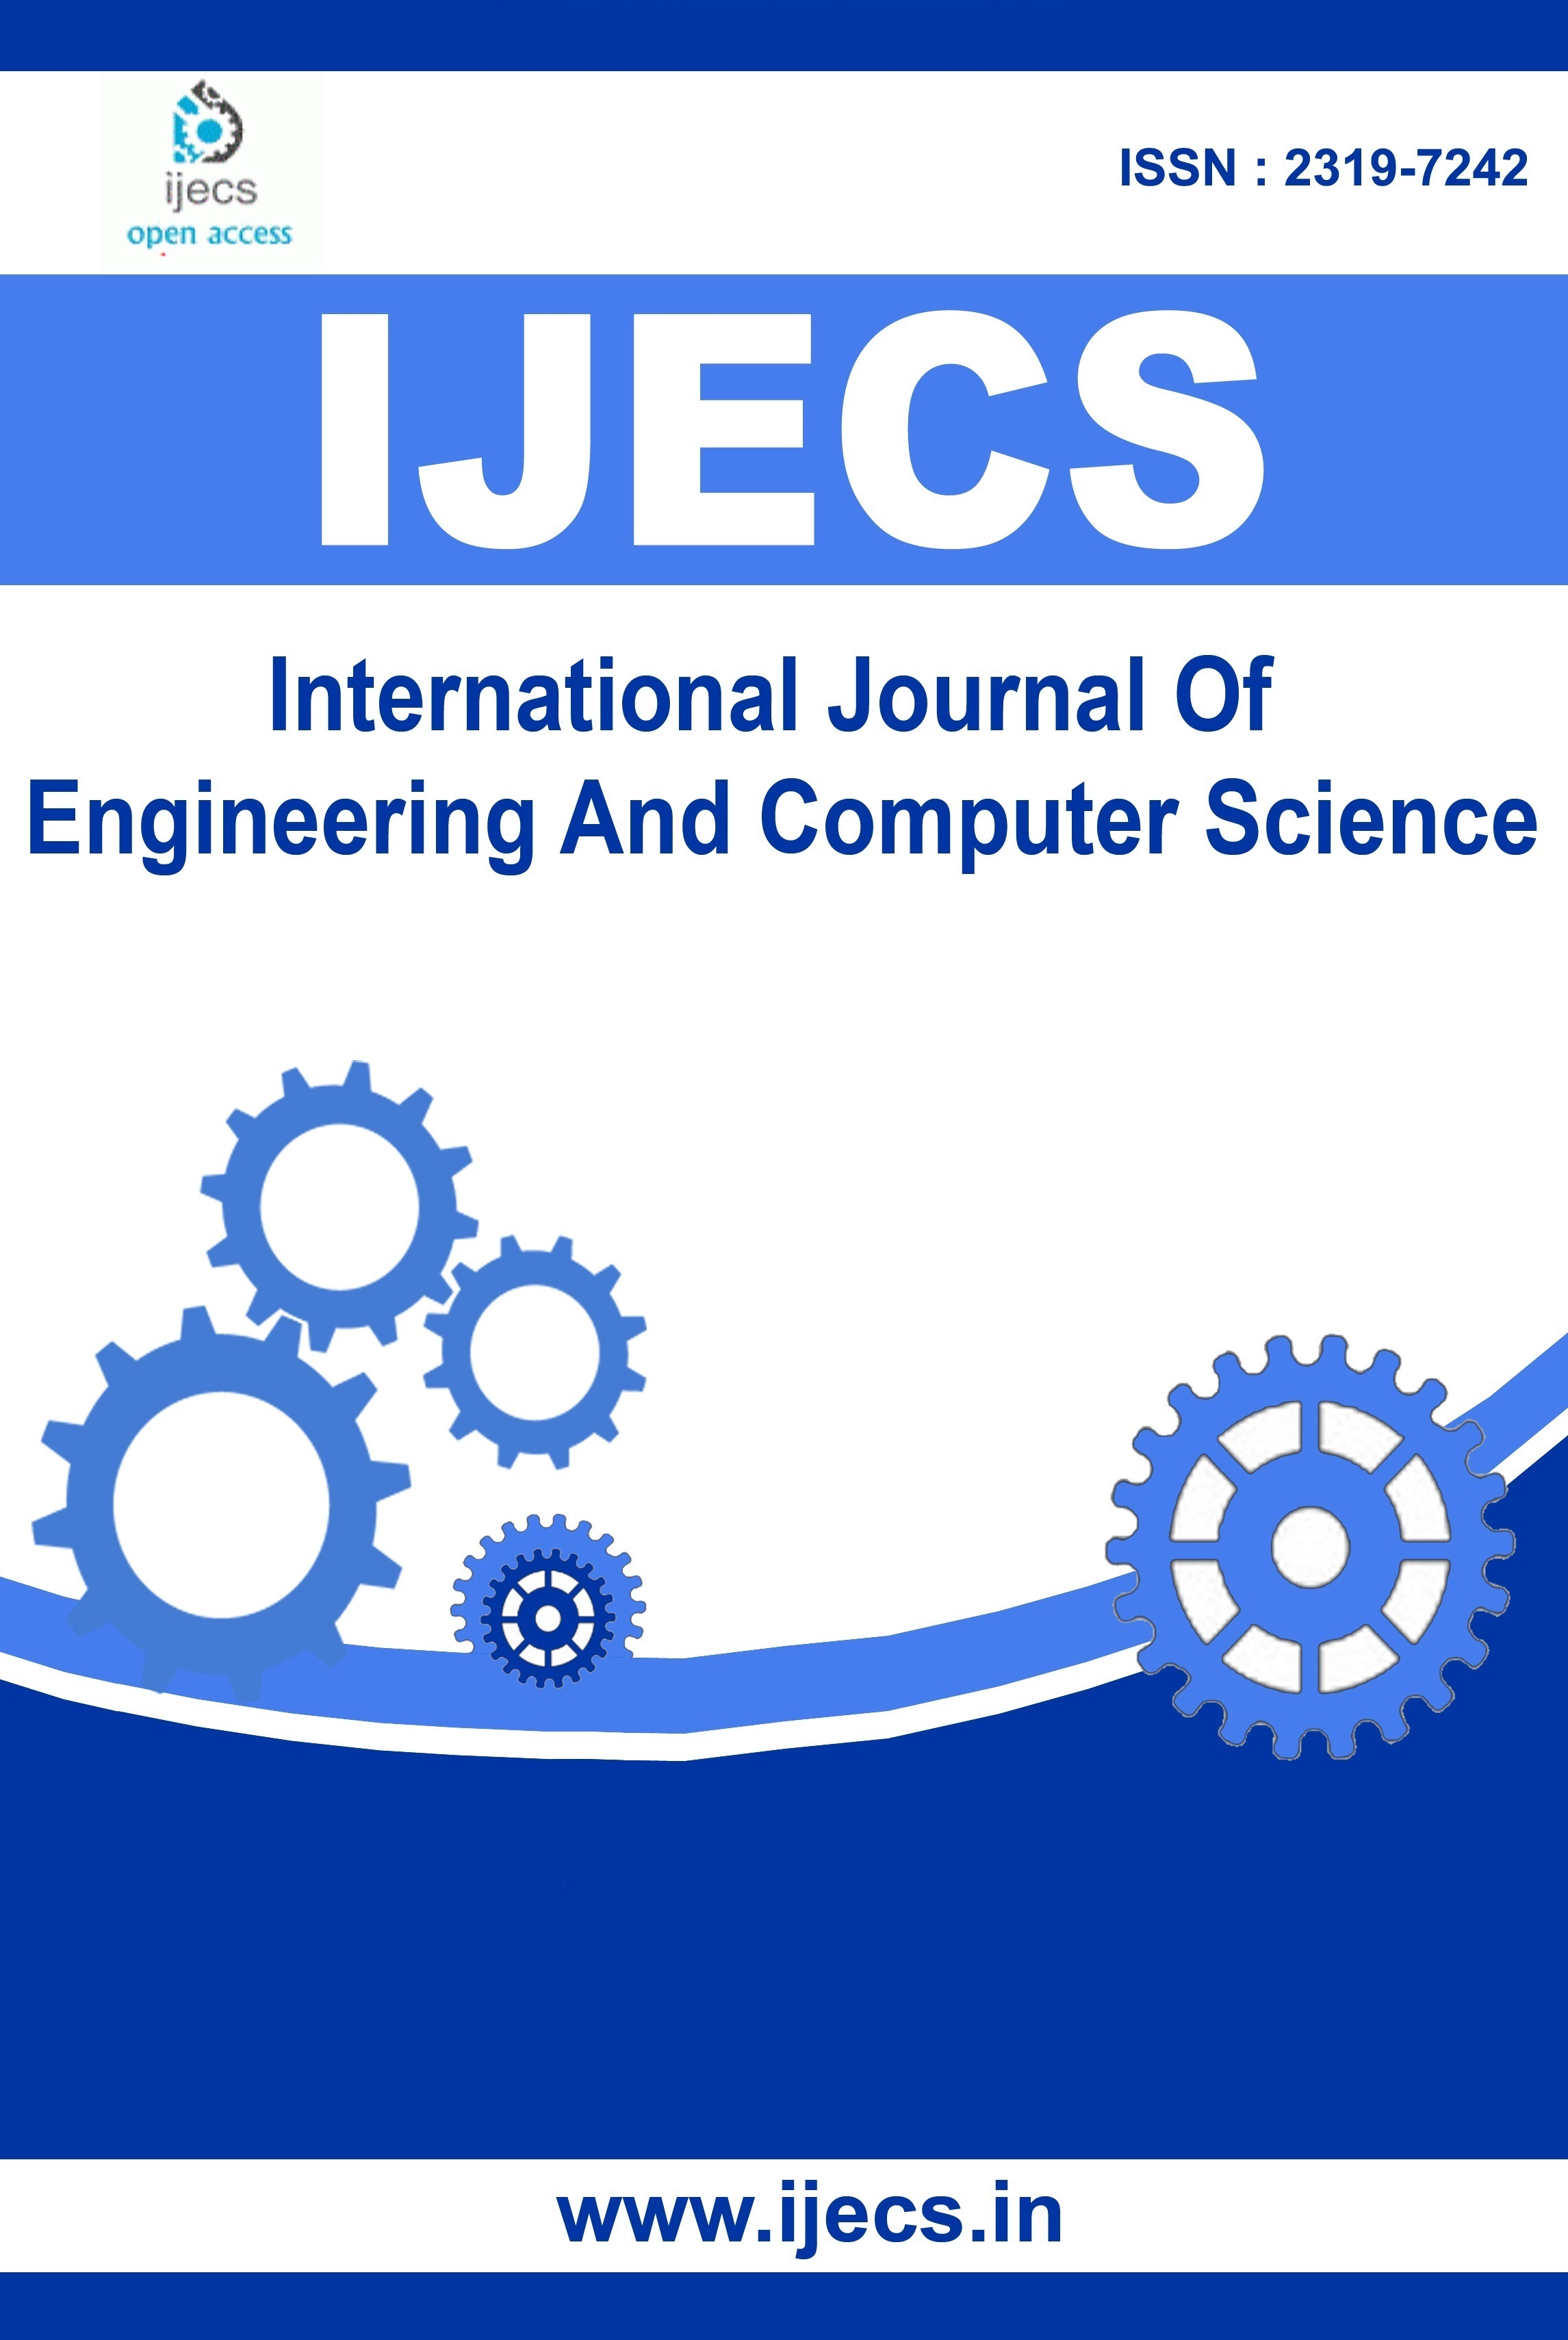 International Journal of Engineering and Computer Science